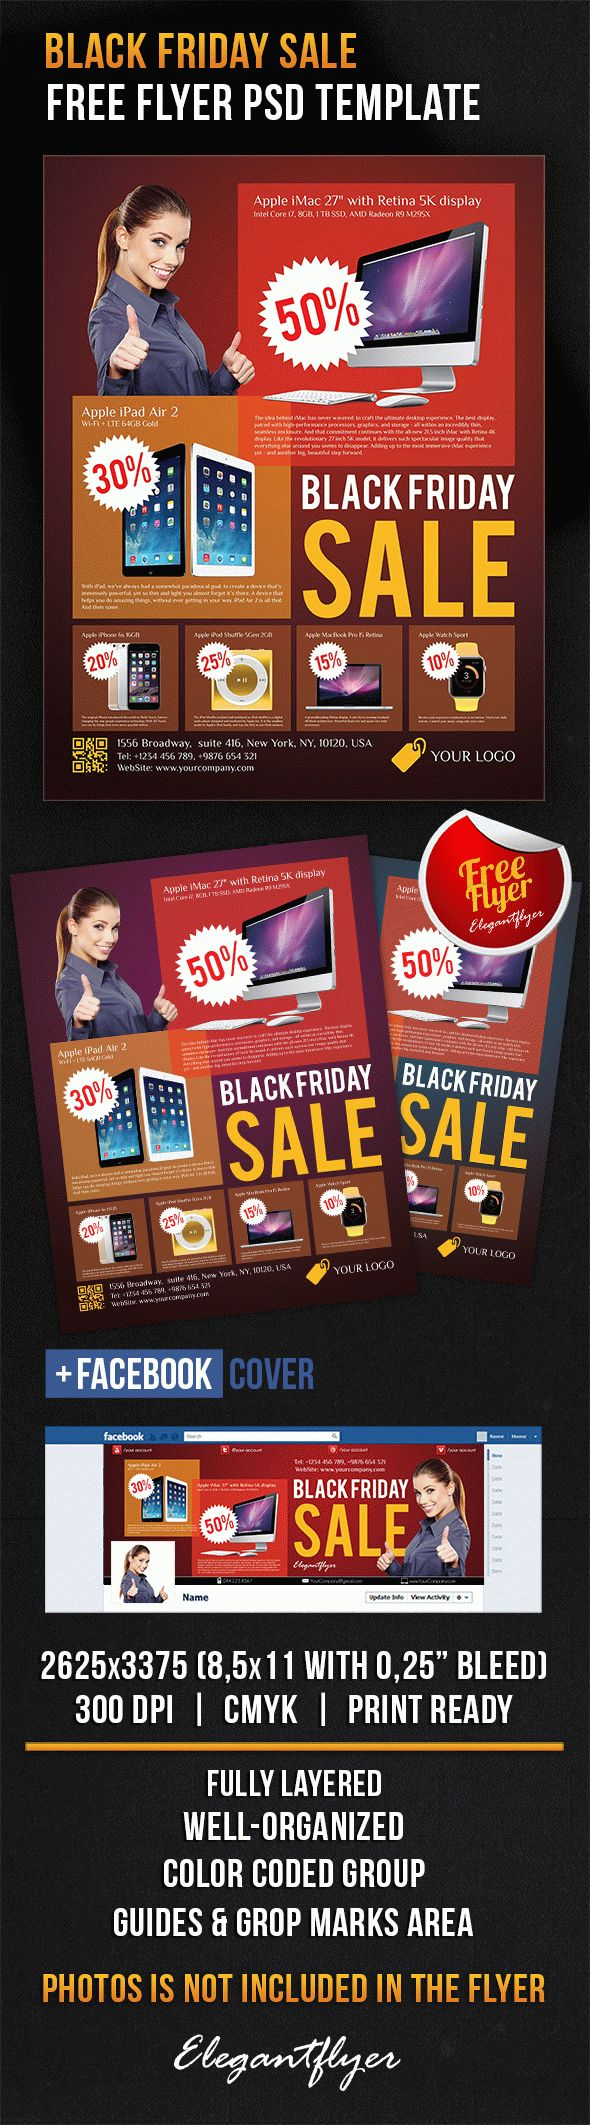 Black Friday Sale – Free Flyer PSD Template